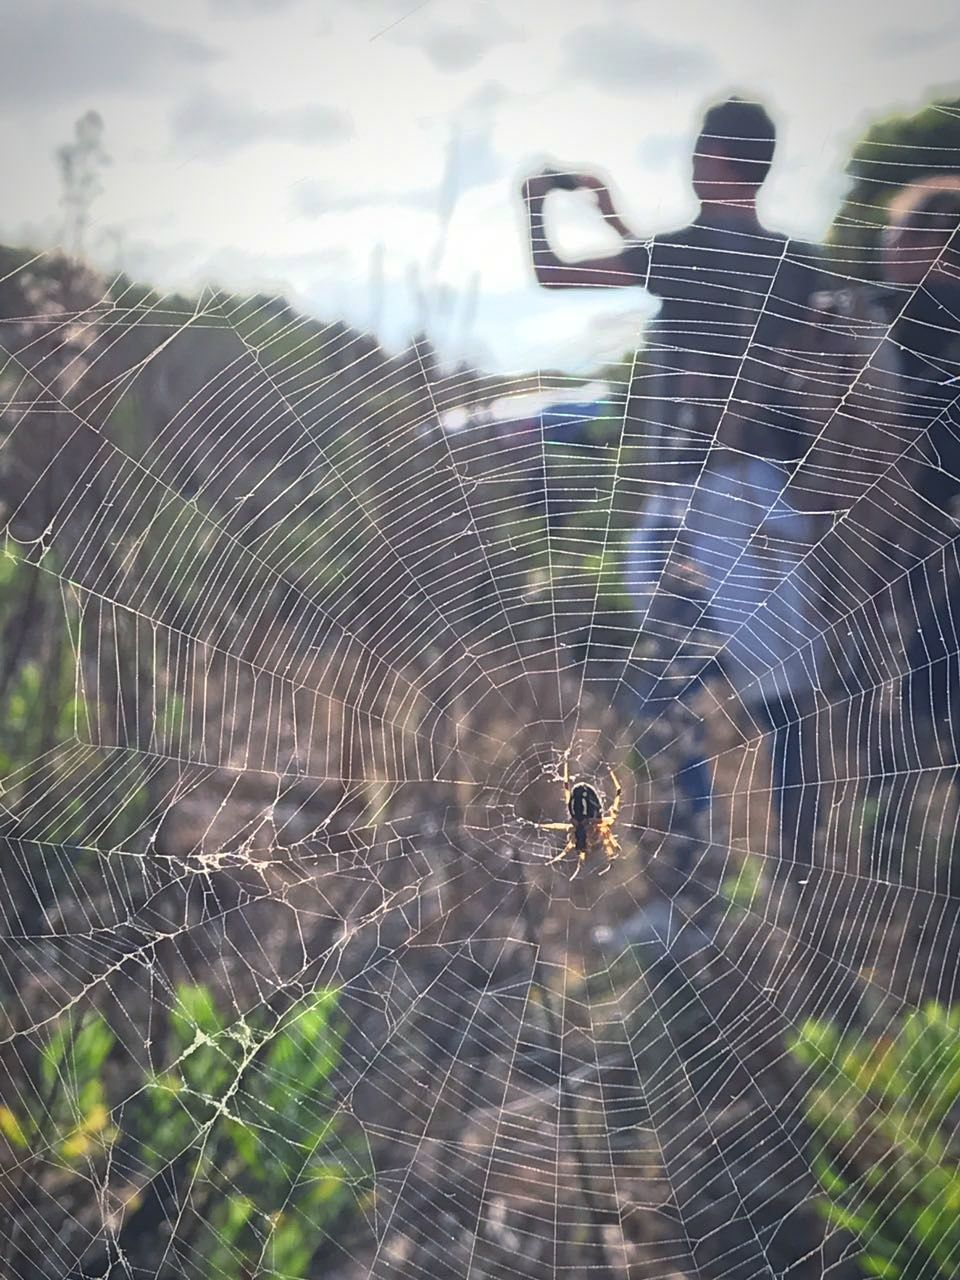 spider web, spider, web, one animal, fragility, focus on foreground, nature, close-up, animal themes, outdoors, survival, animals in the wild, no people, day, intricacy, trapped, insect, beauty in nature, freshness